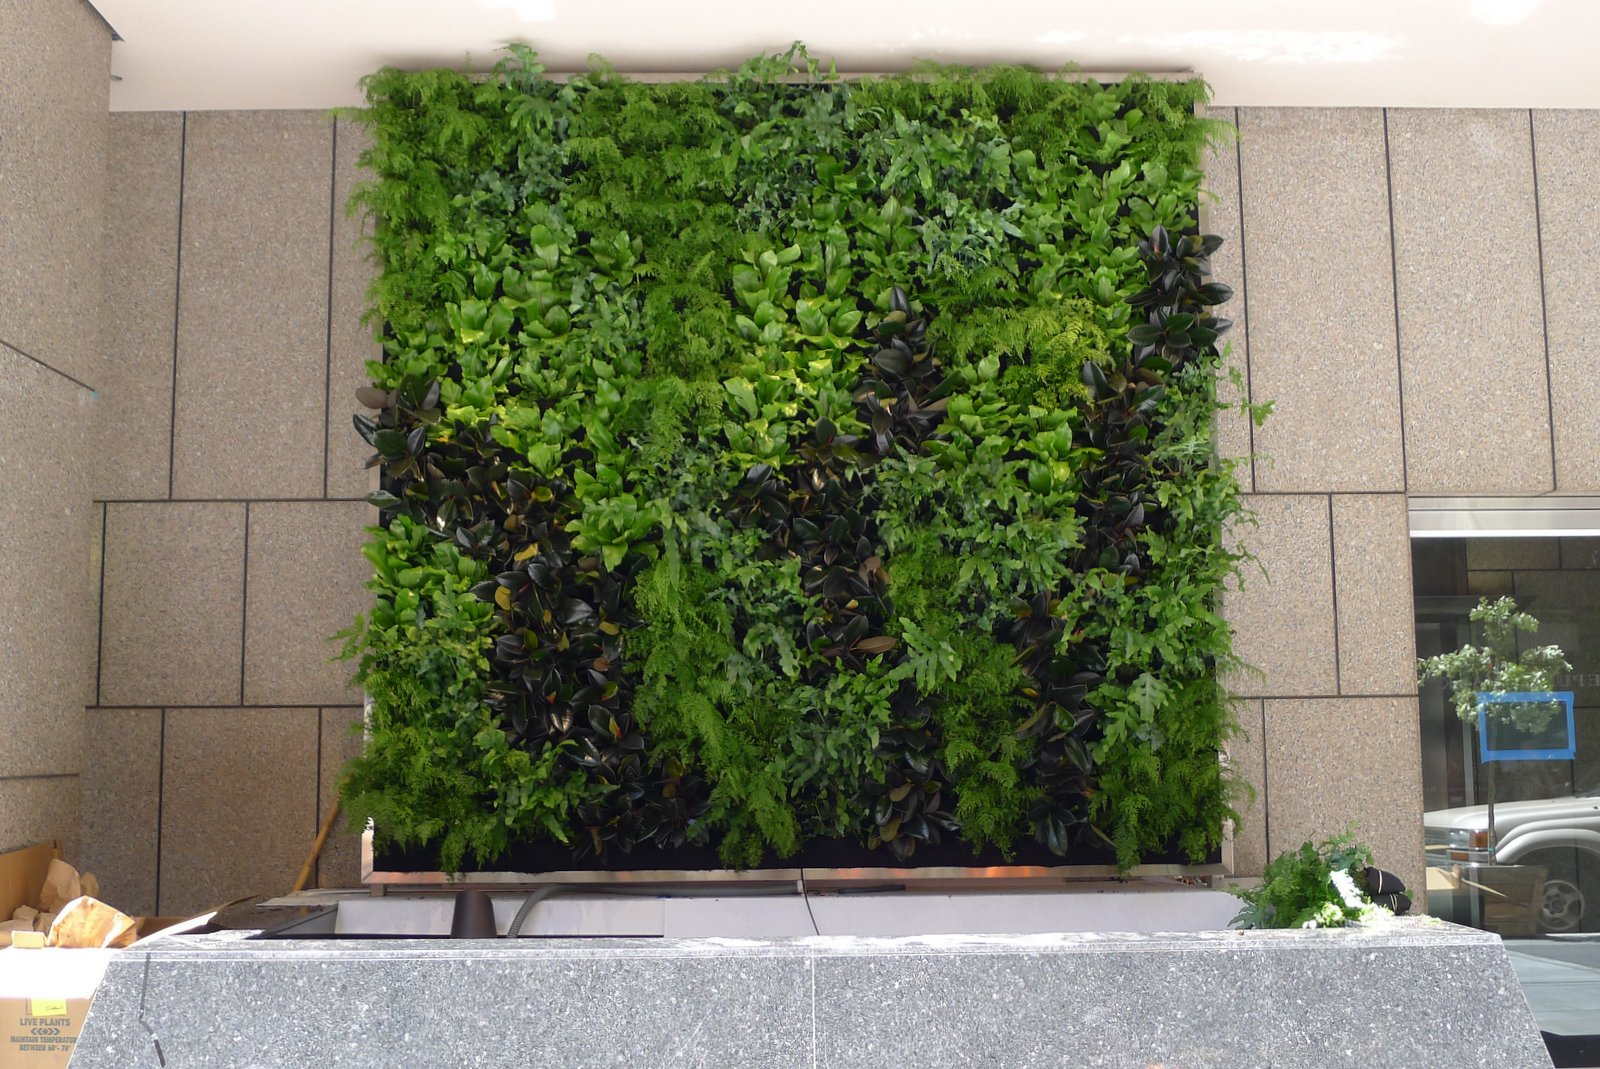 plants on walls vertical garden systems june 2012. Black Bedroom Furniture Sets. Home Design Ideas